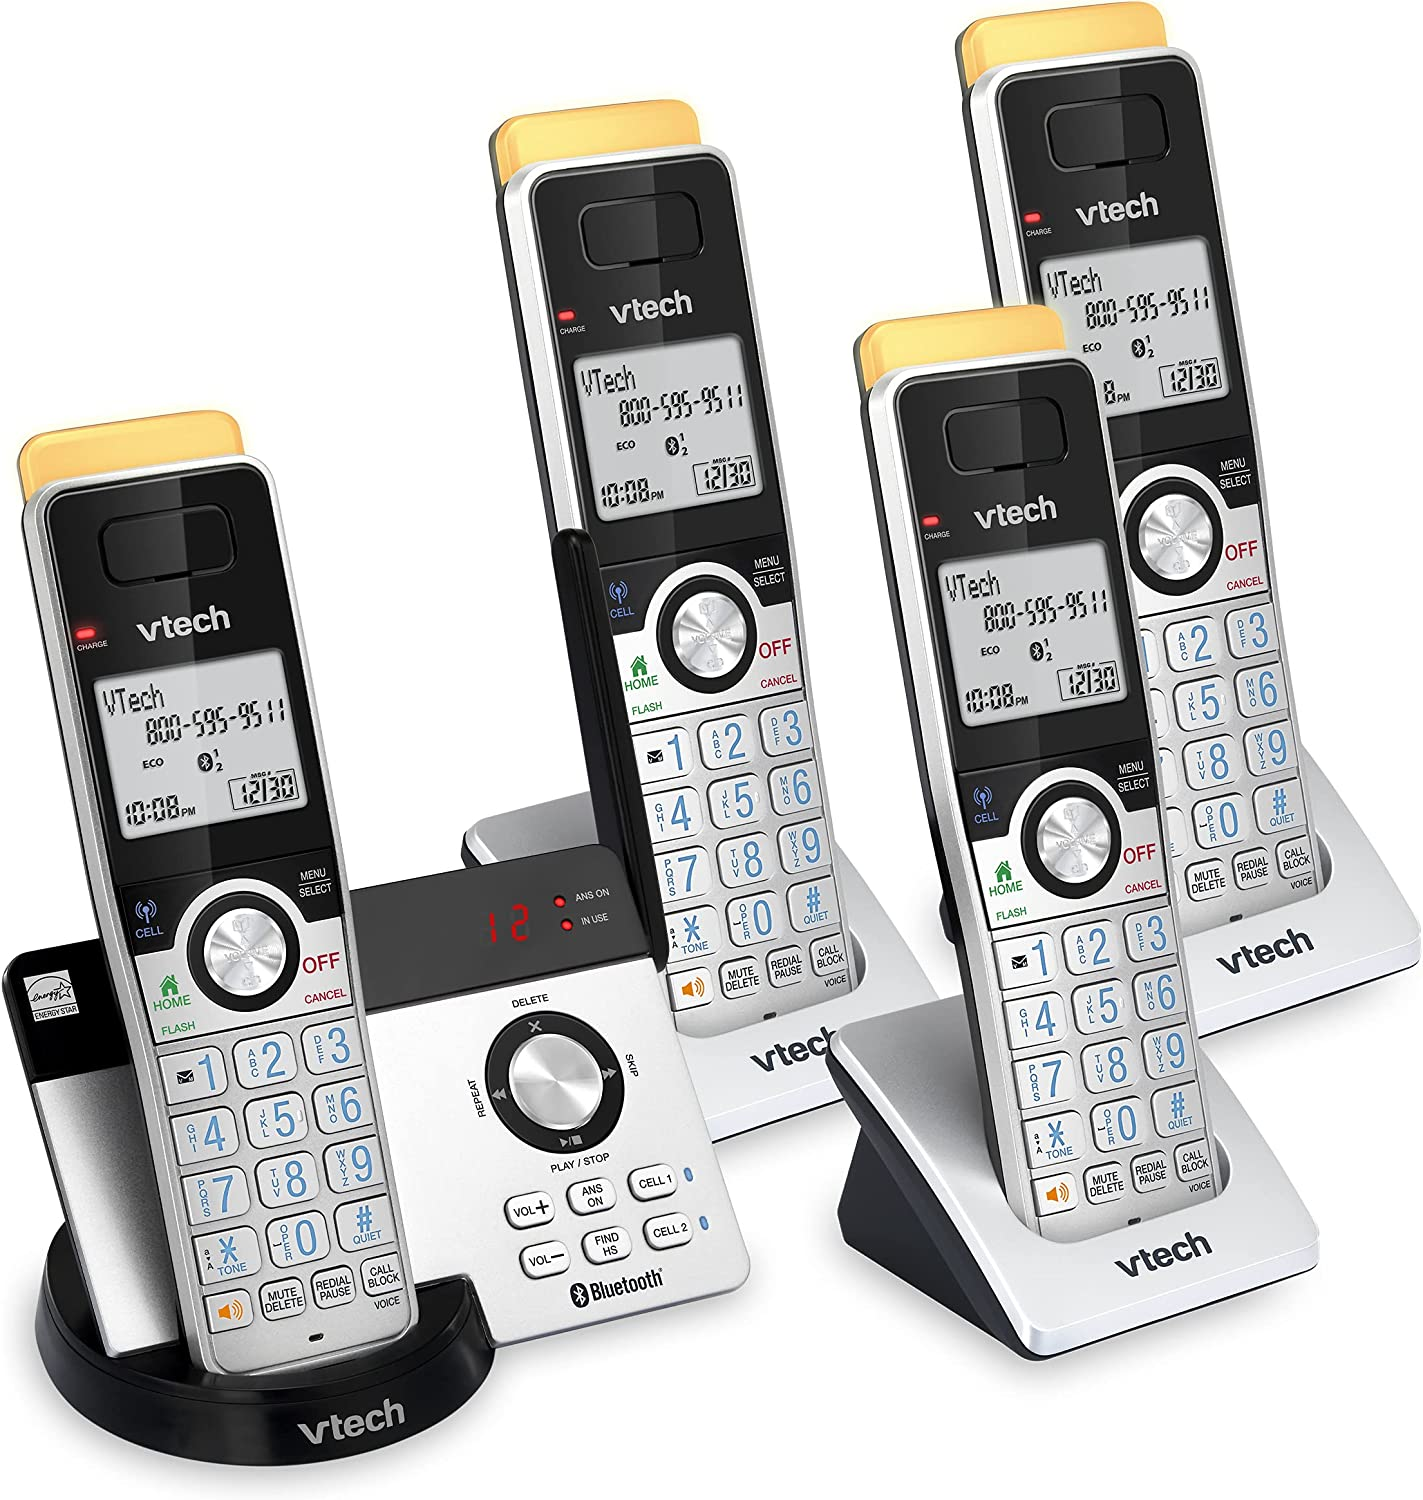 VTECH IS8121-4 Super Long Range up to 2300 Feet DECT 6.0 Bluetooth 4 Handset Cordless Phone for Home with Answering Machine, Call Blocking, Connect to Cell, Intercom and Expandable to 5 Handsets